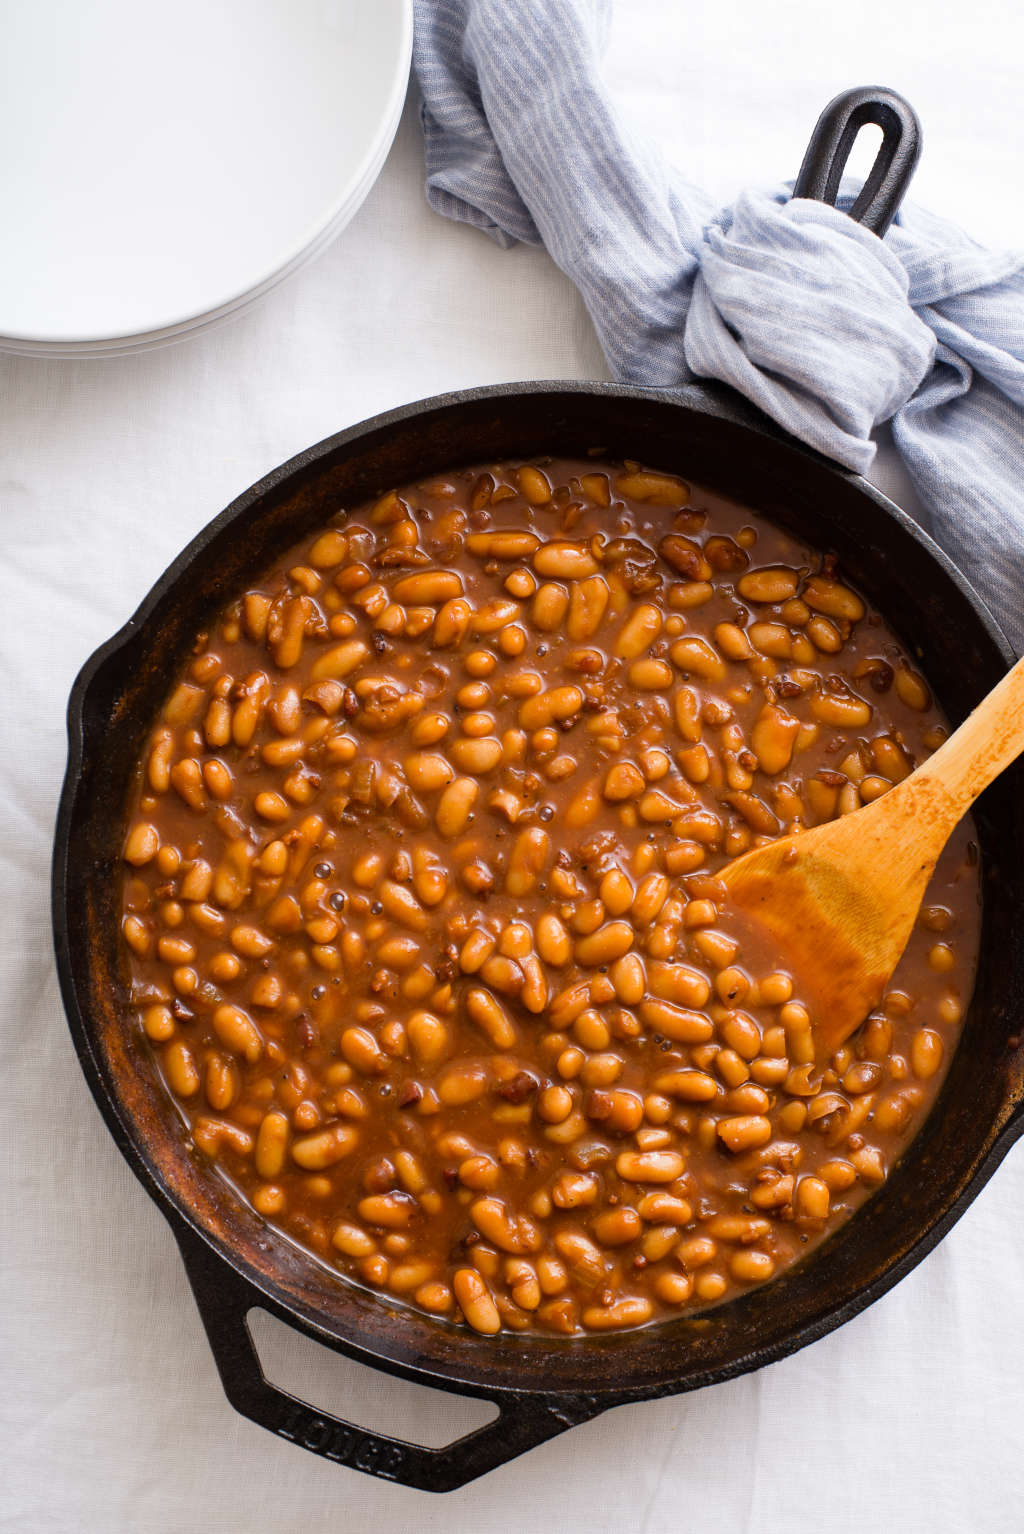 You Can Make Pork & Beans from Scratch in 30 Minutes